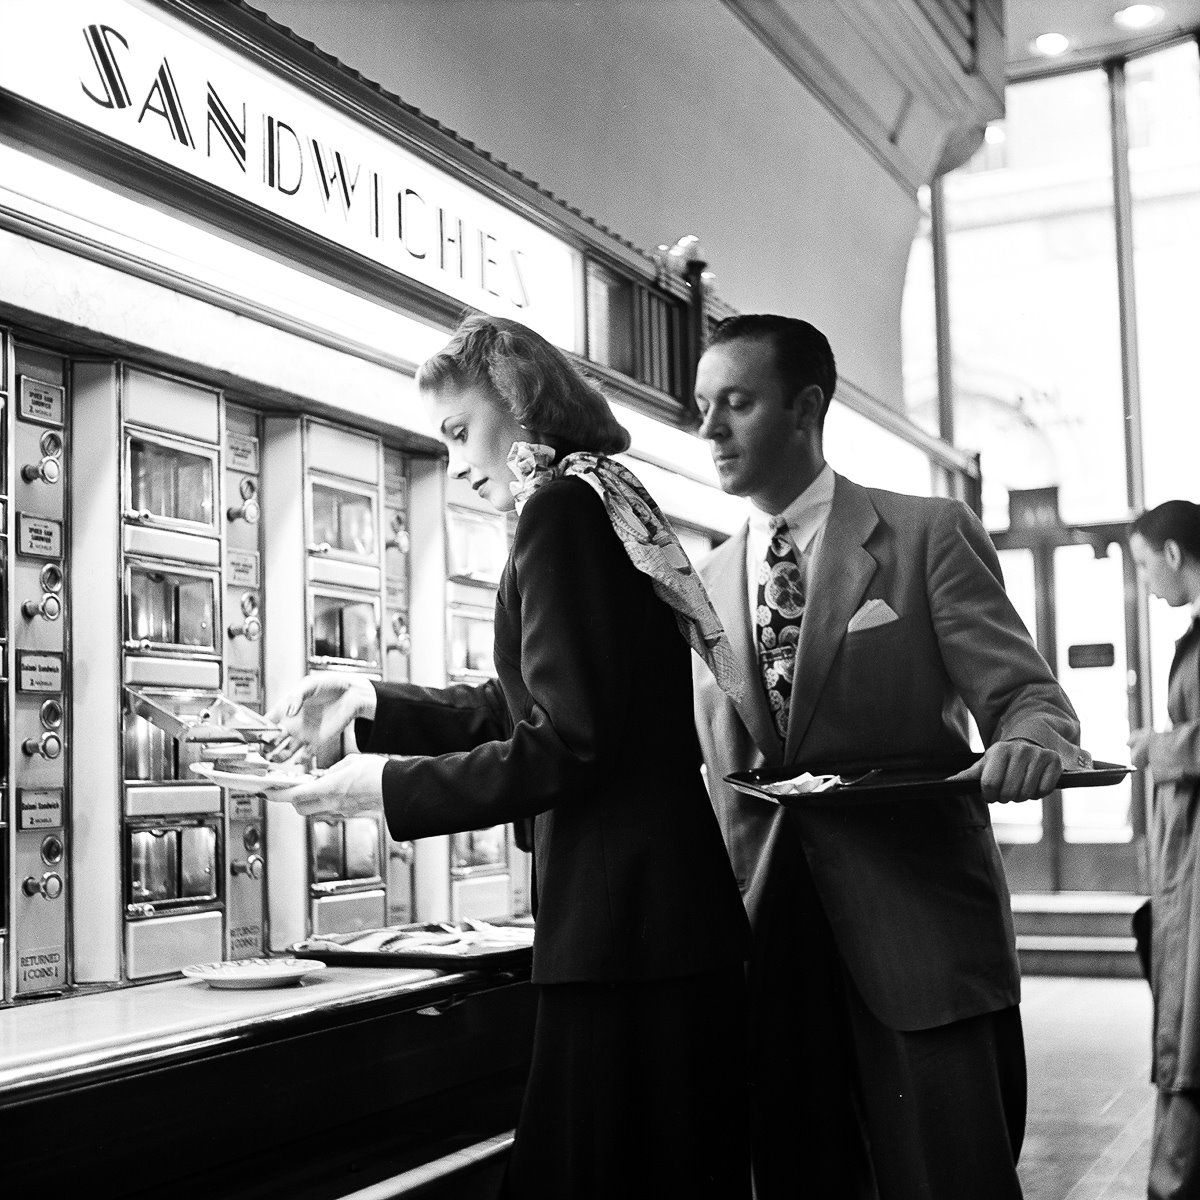 Grand central station automat new york 1948 photo by